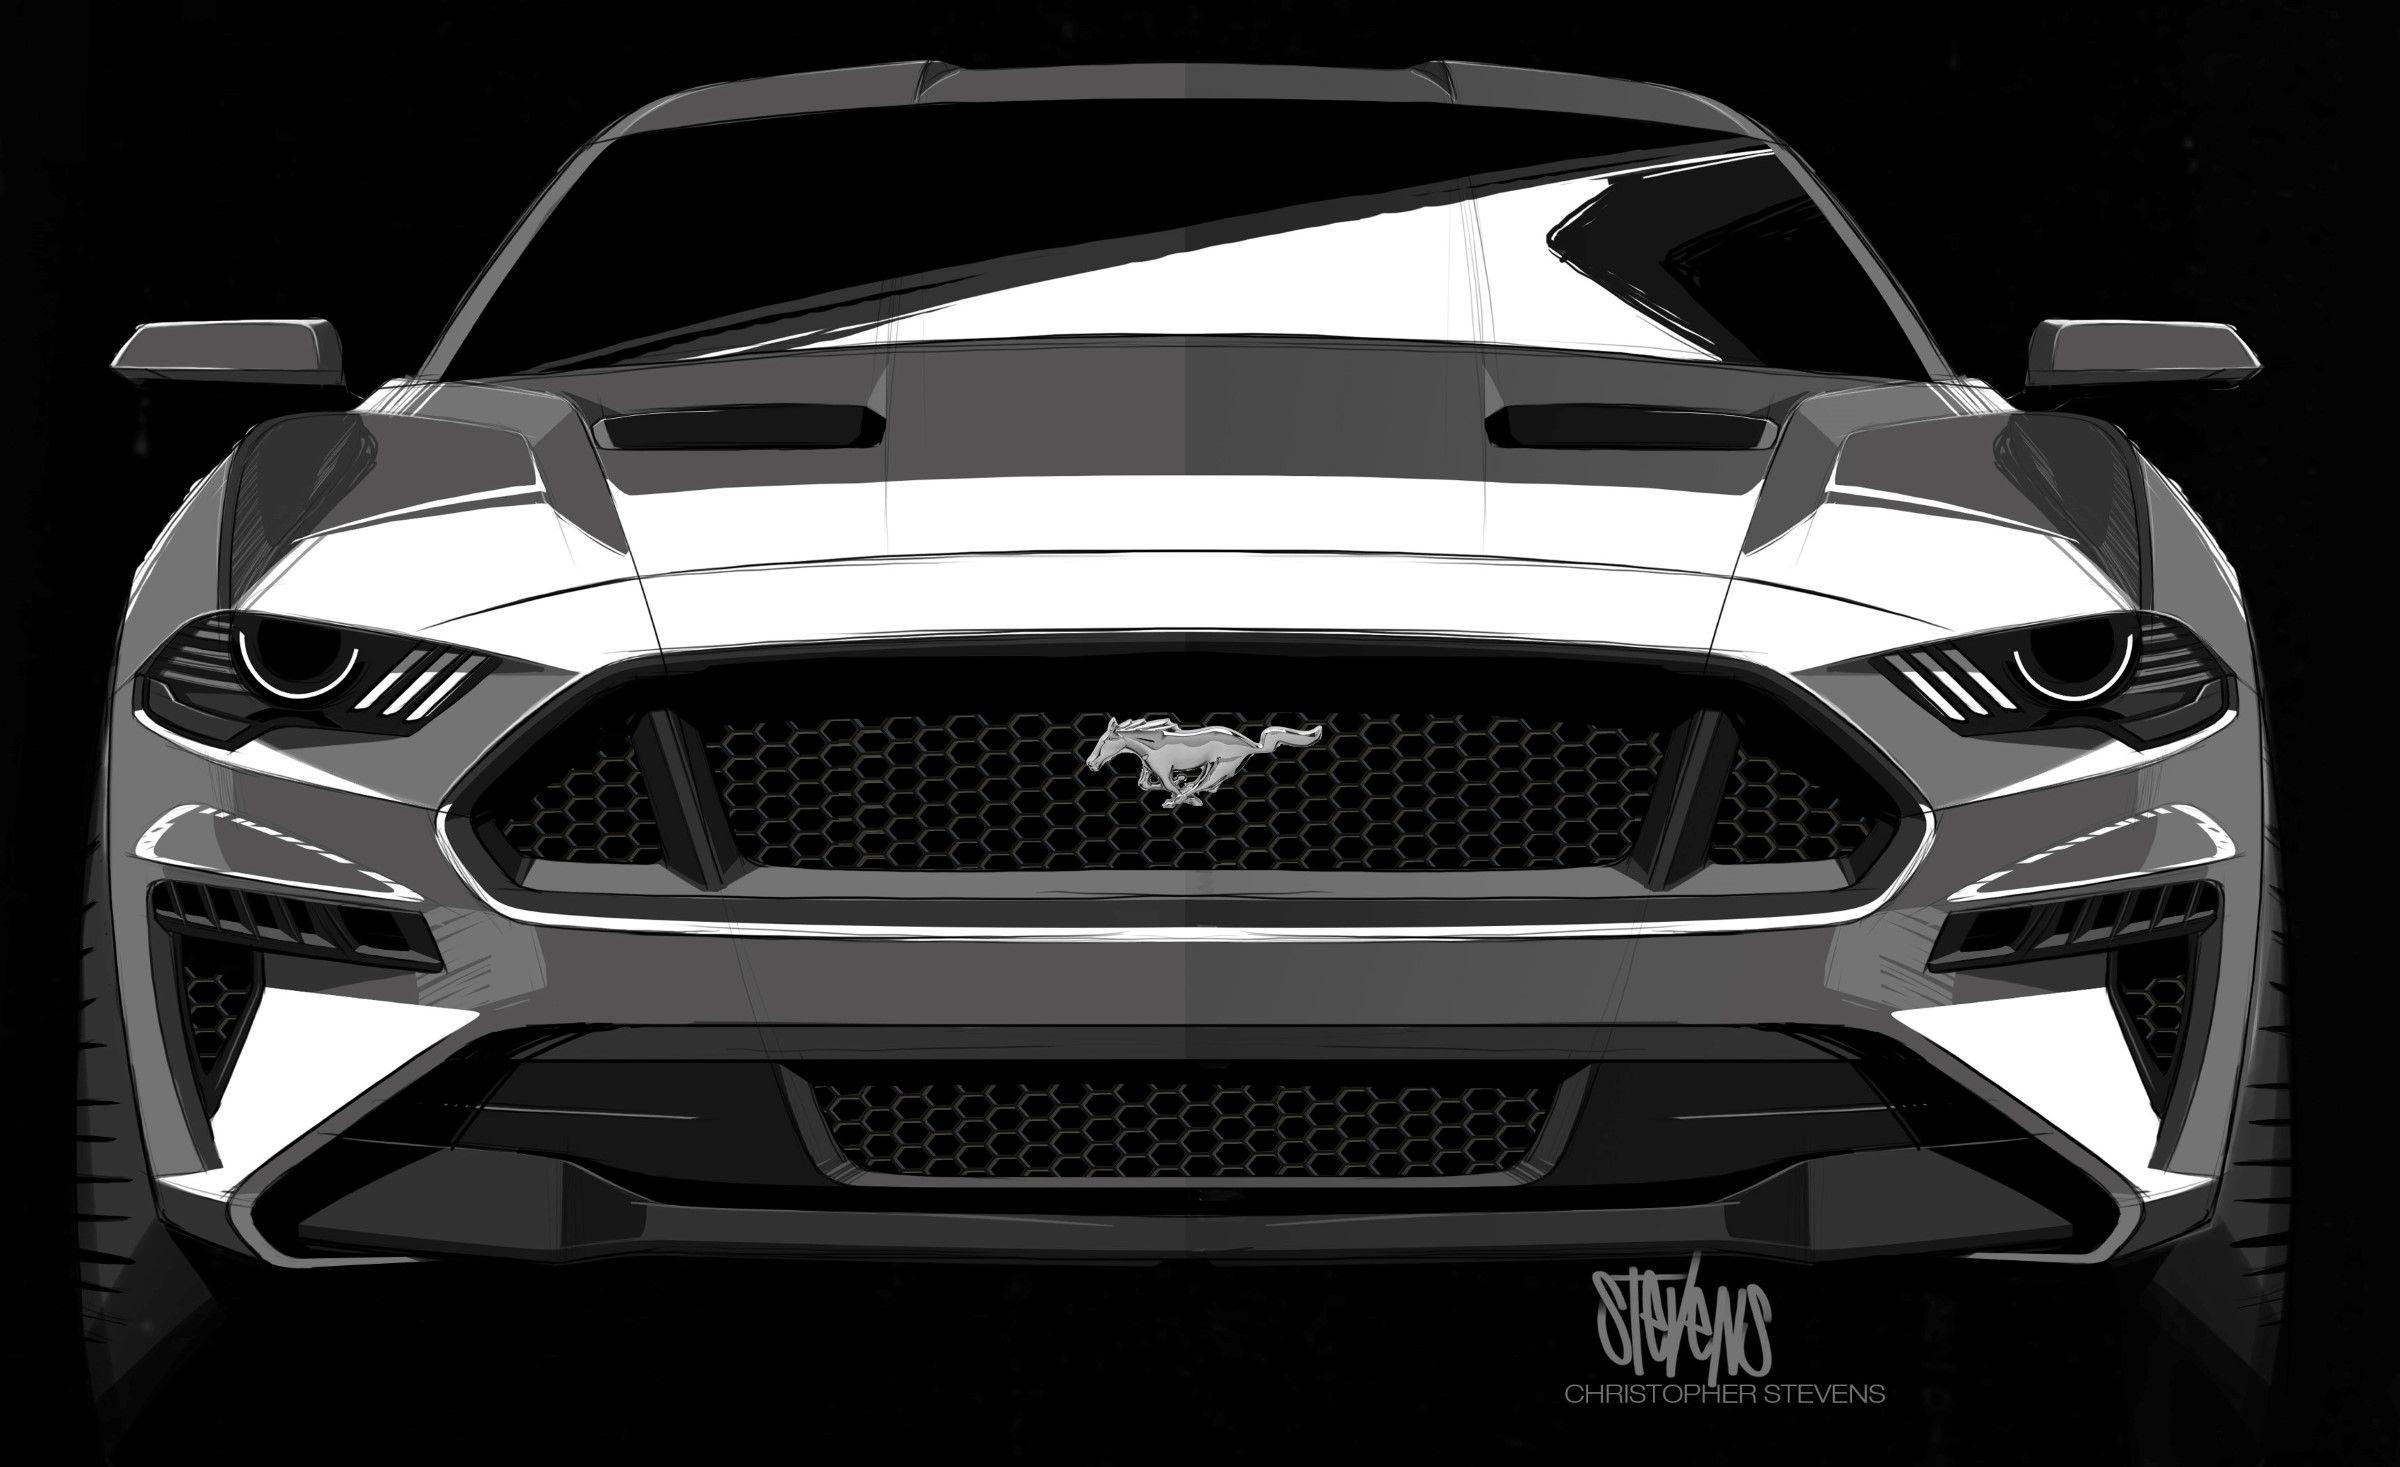 2018 ford mustang design sketch 2018 mustang gt new mustang mustang cars